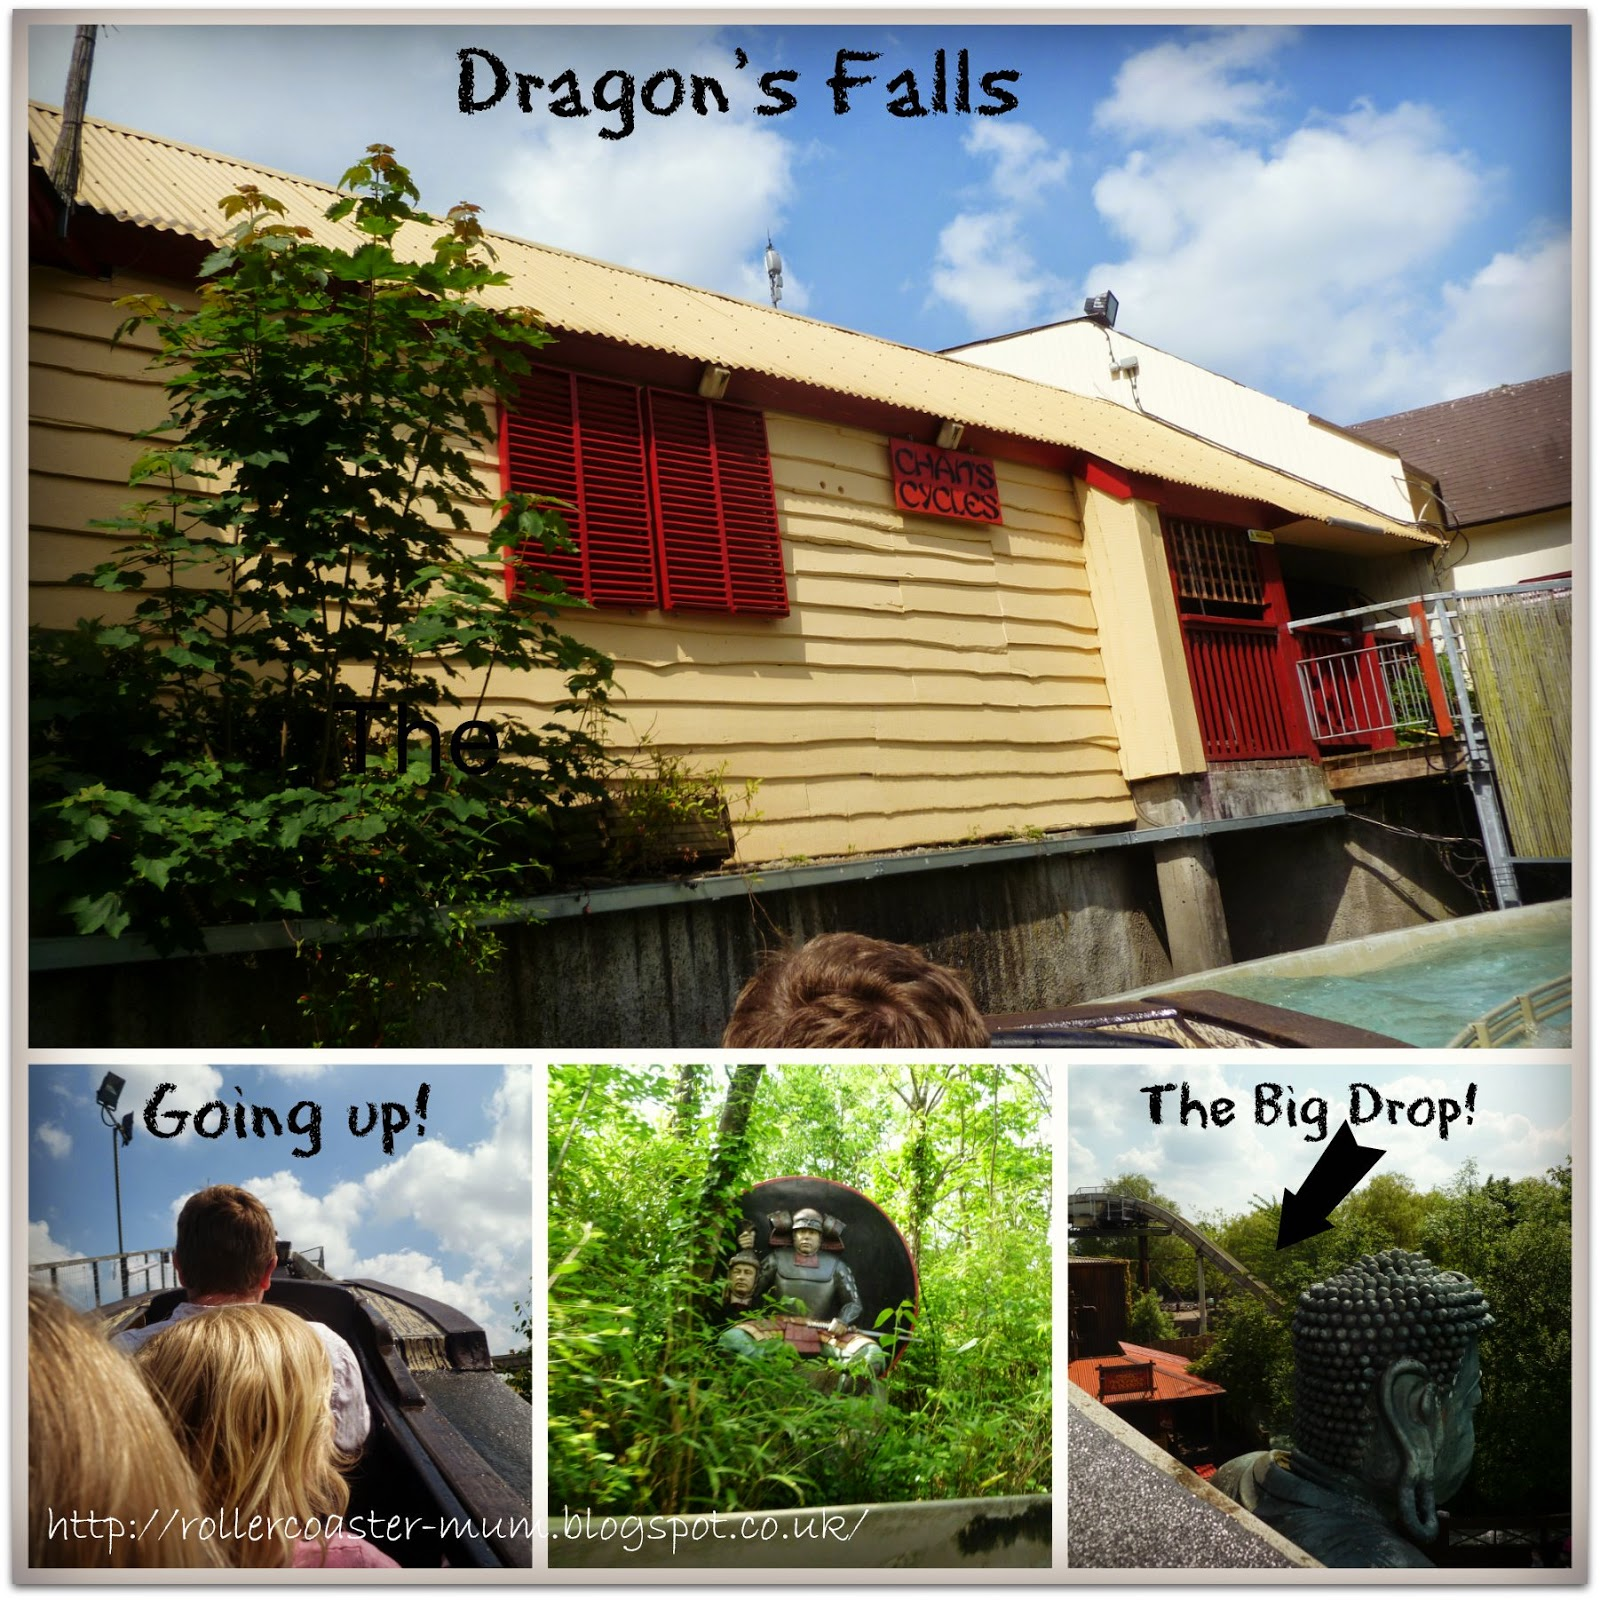 Chessington, Theme Parks, Log flume, Dragon's Falls